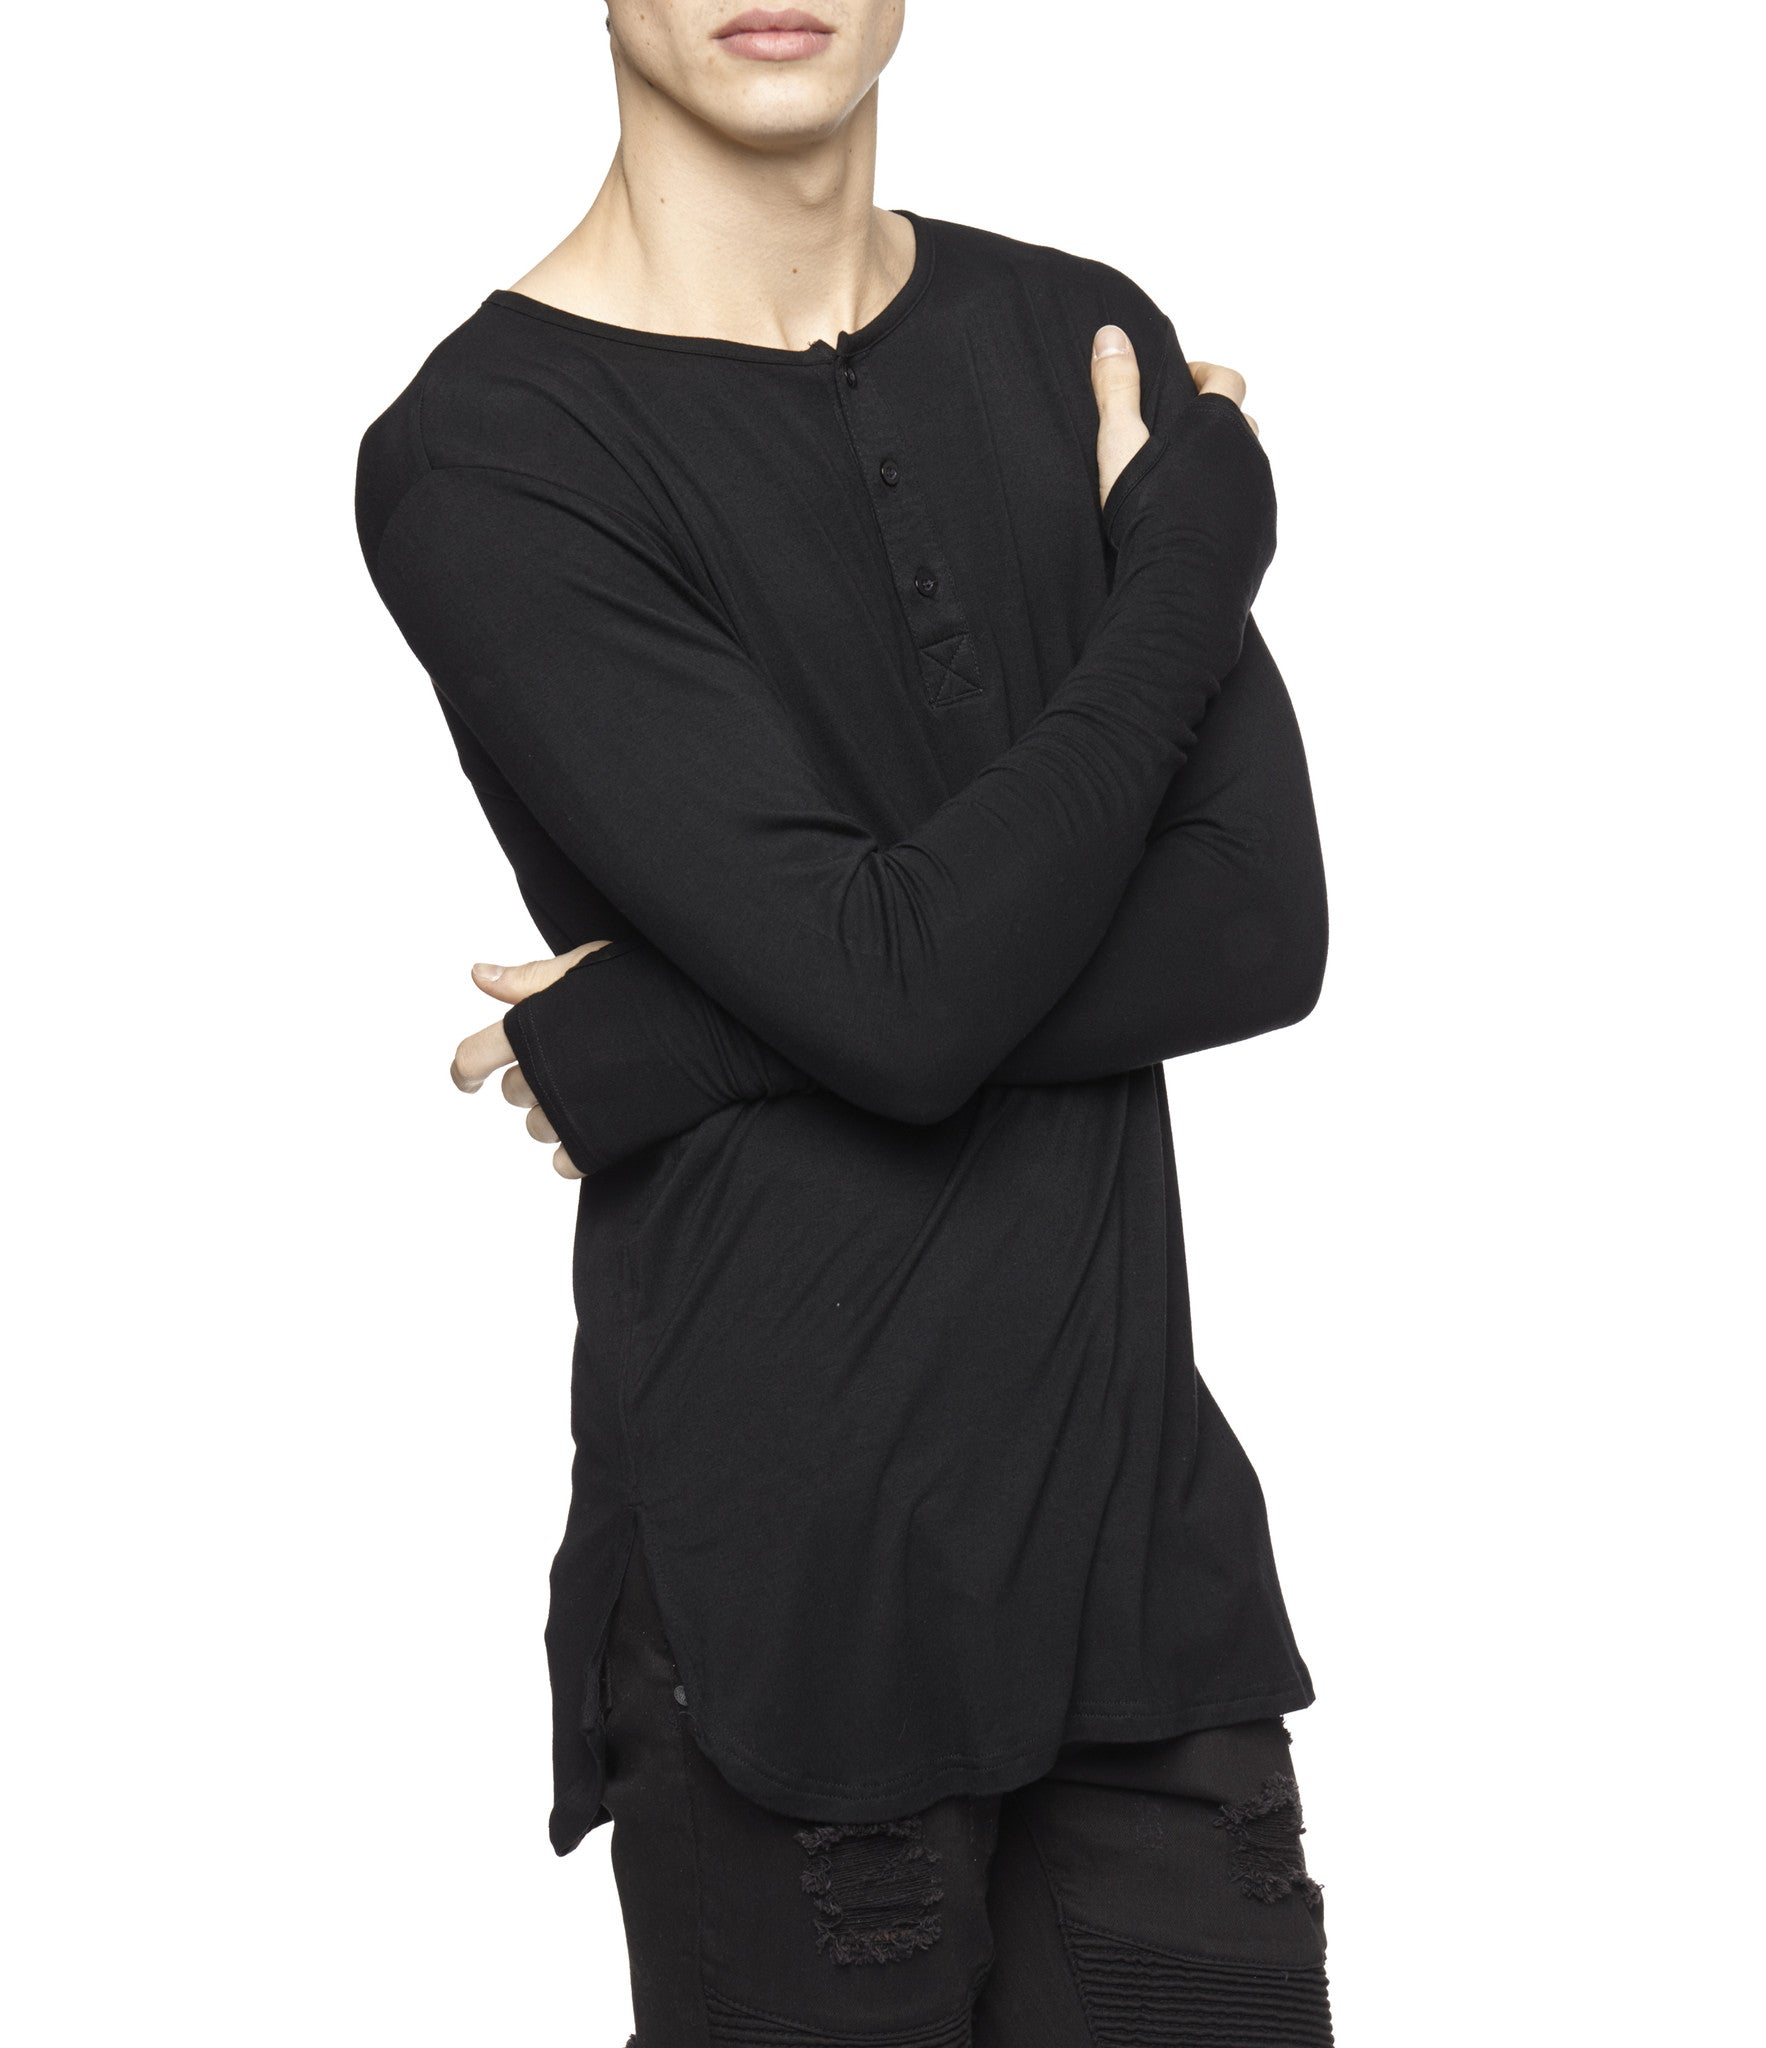 LS264 Under Layer Henley Tee - Black - underated london - underatedco - 6